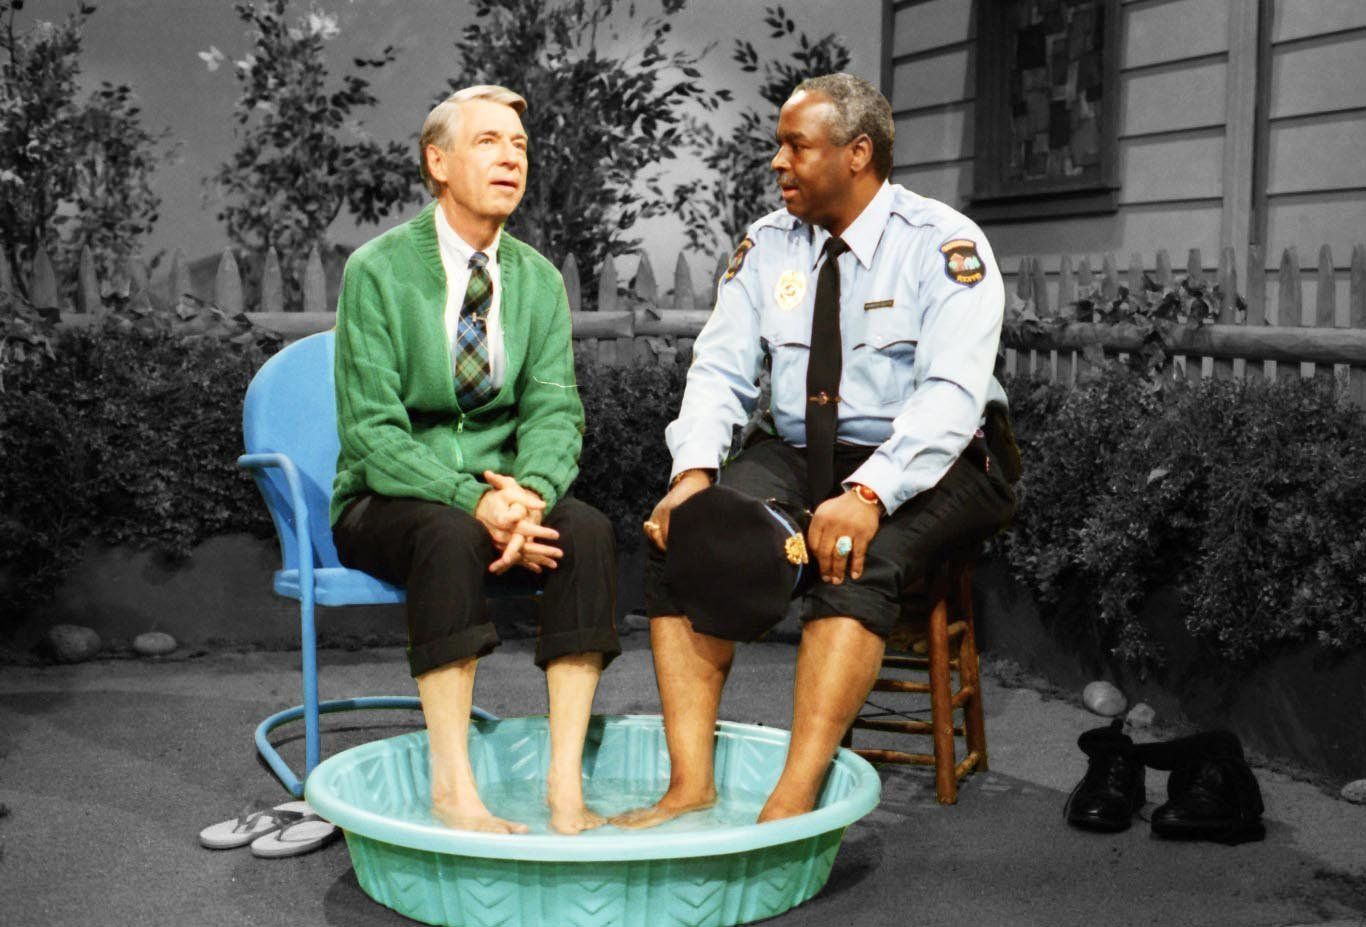 How A Gay 'Ghetto Boy' Bonded With Mister Rogers And Changed The